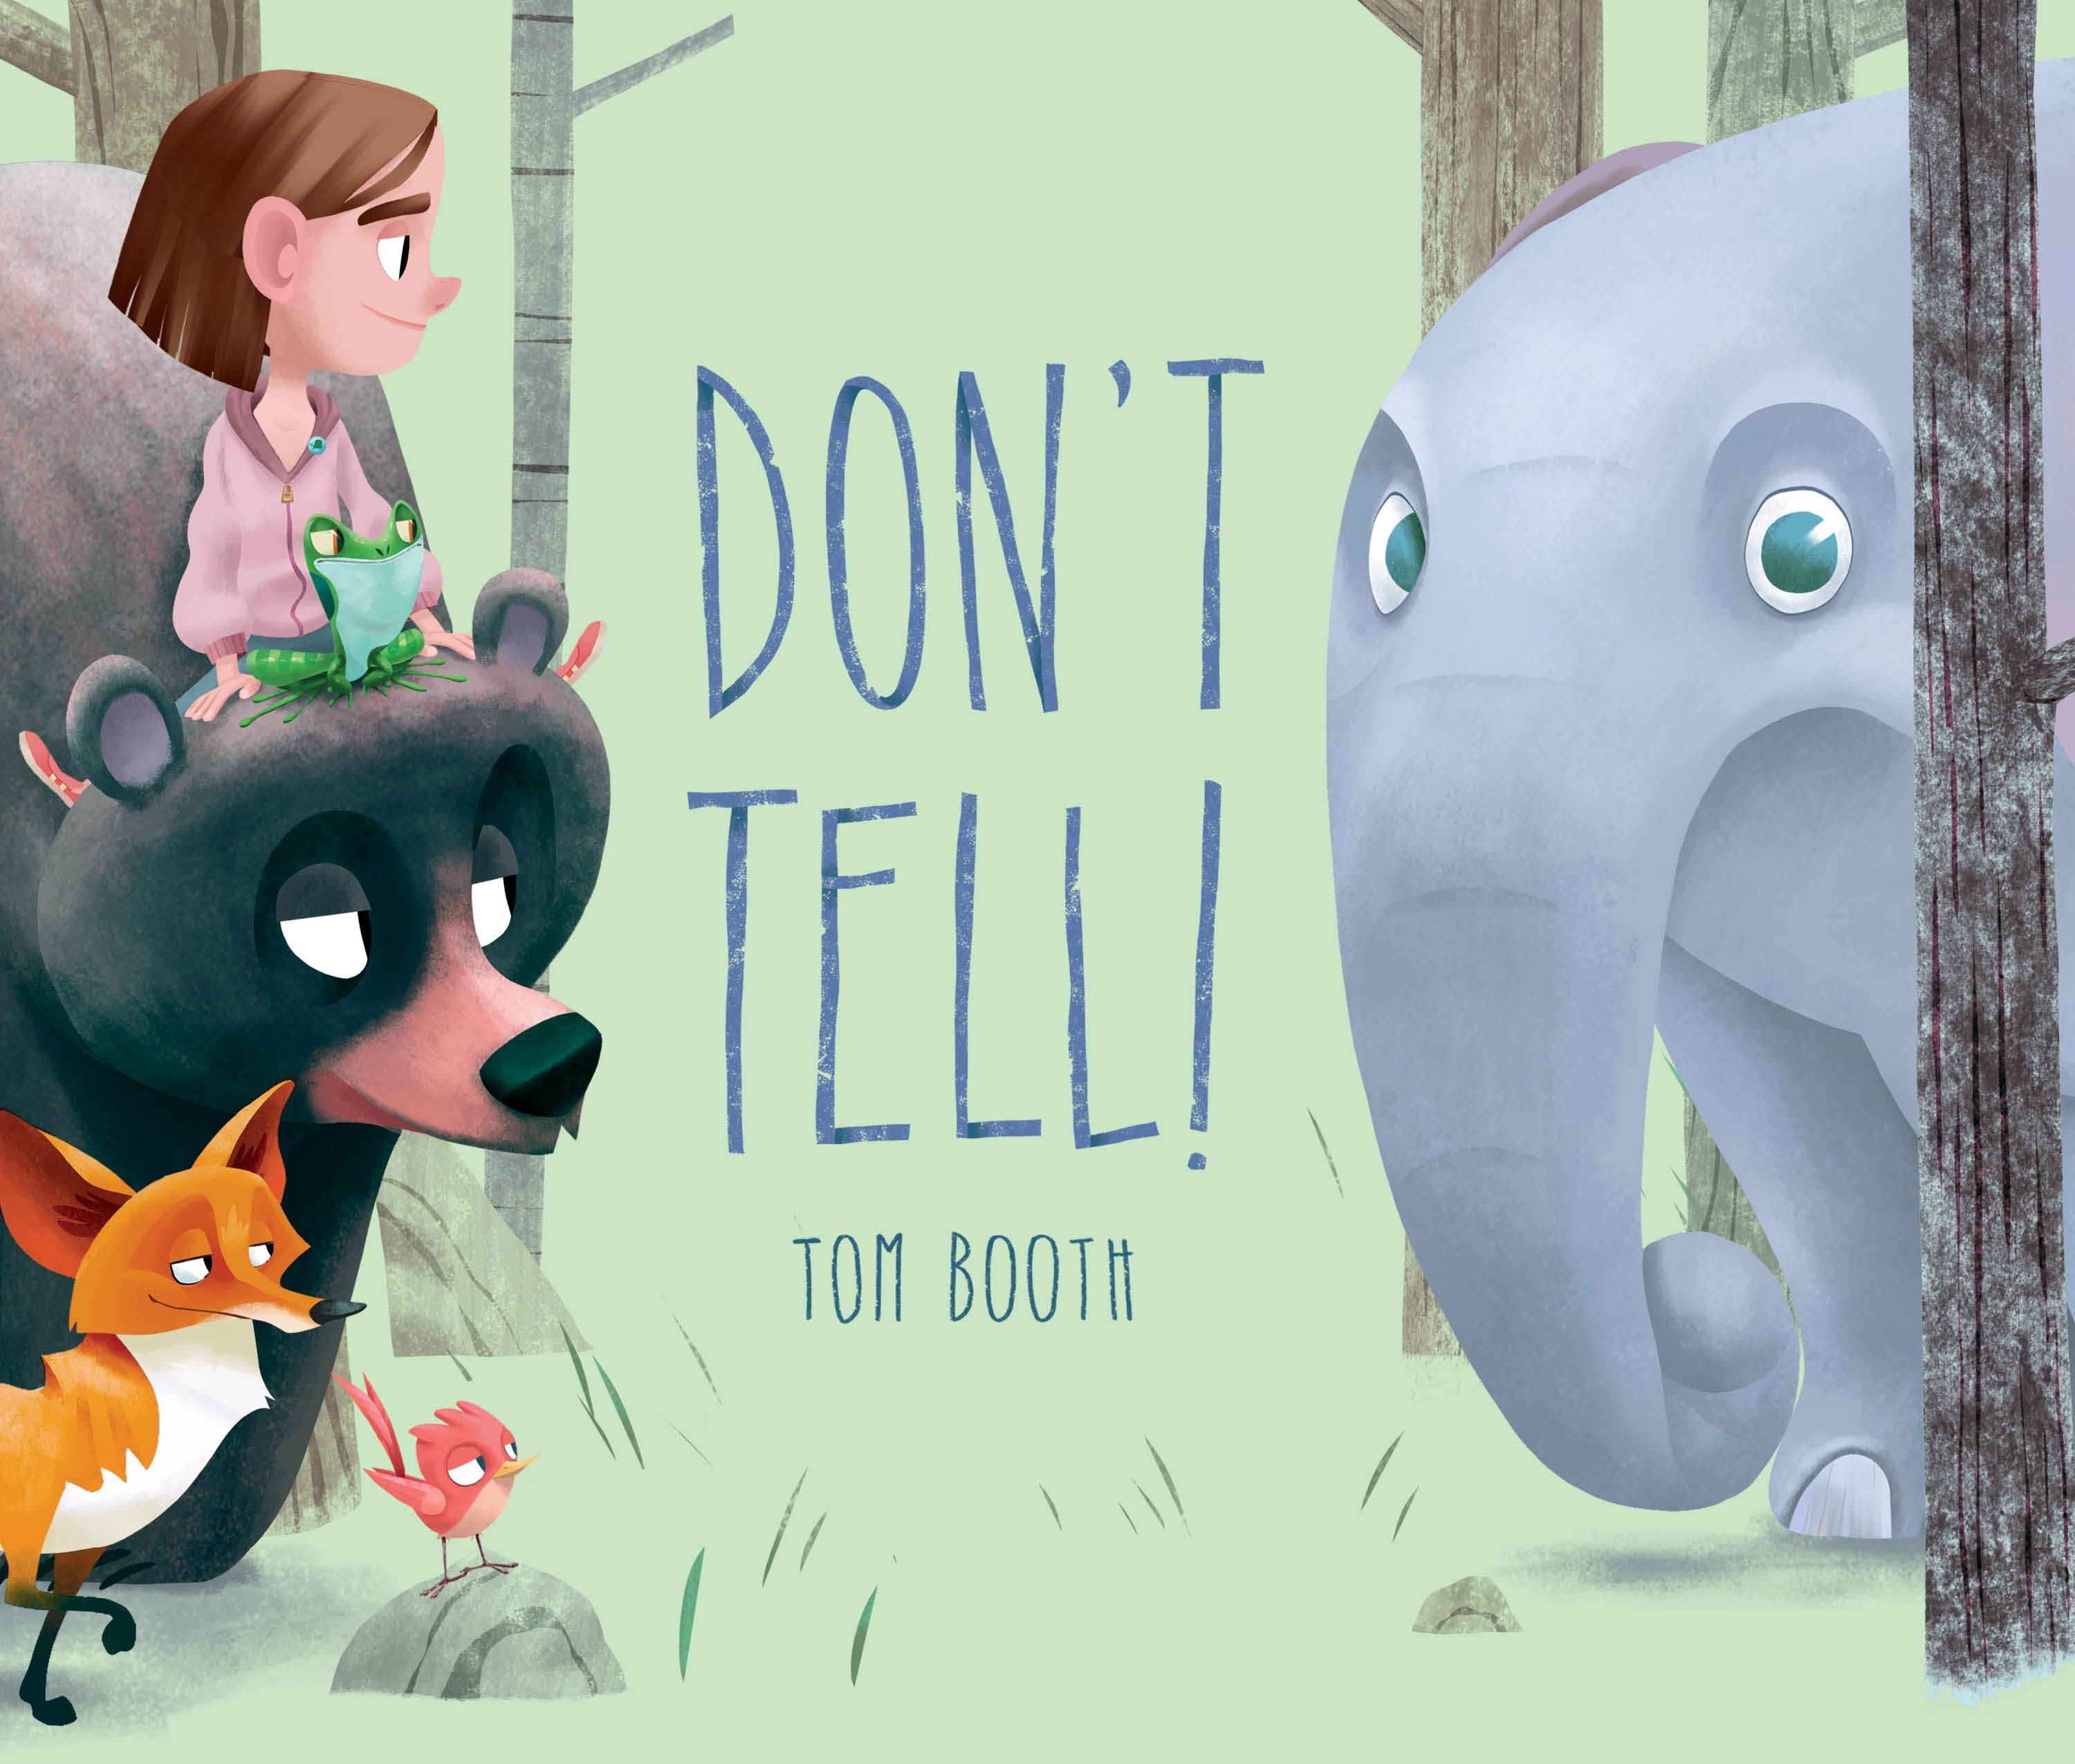 Sunday Story Time with Tom Booth (Author & Illustrator of Don't Tell!)